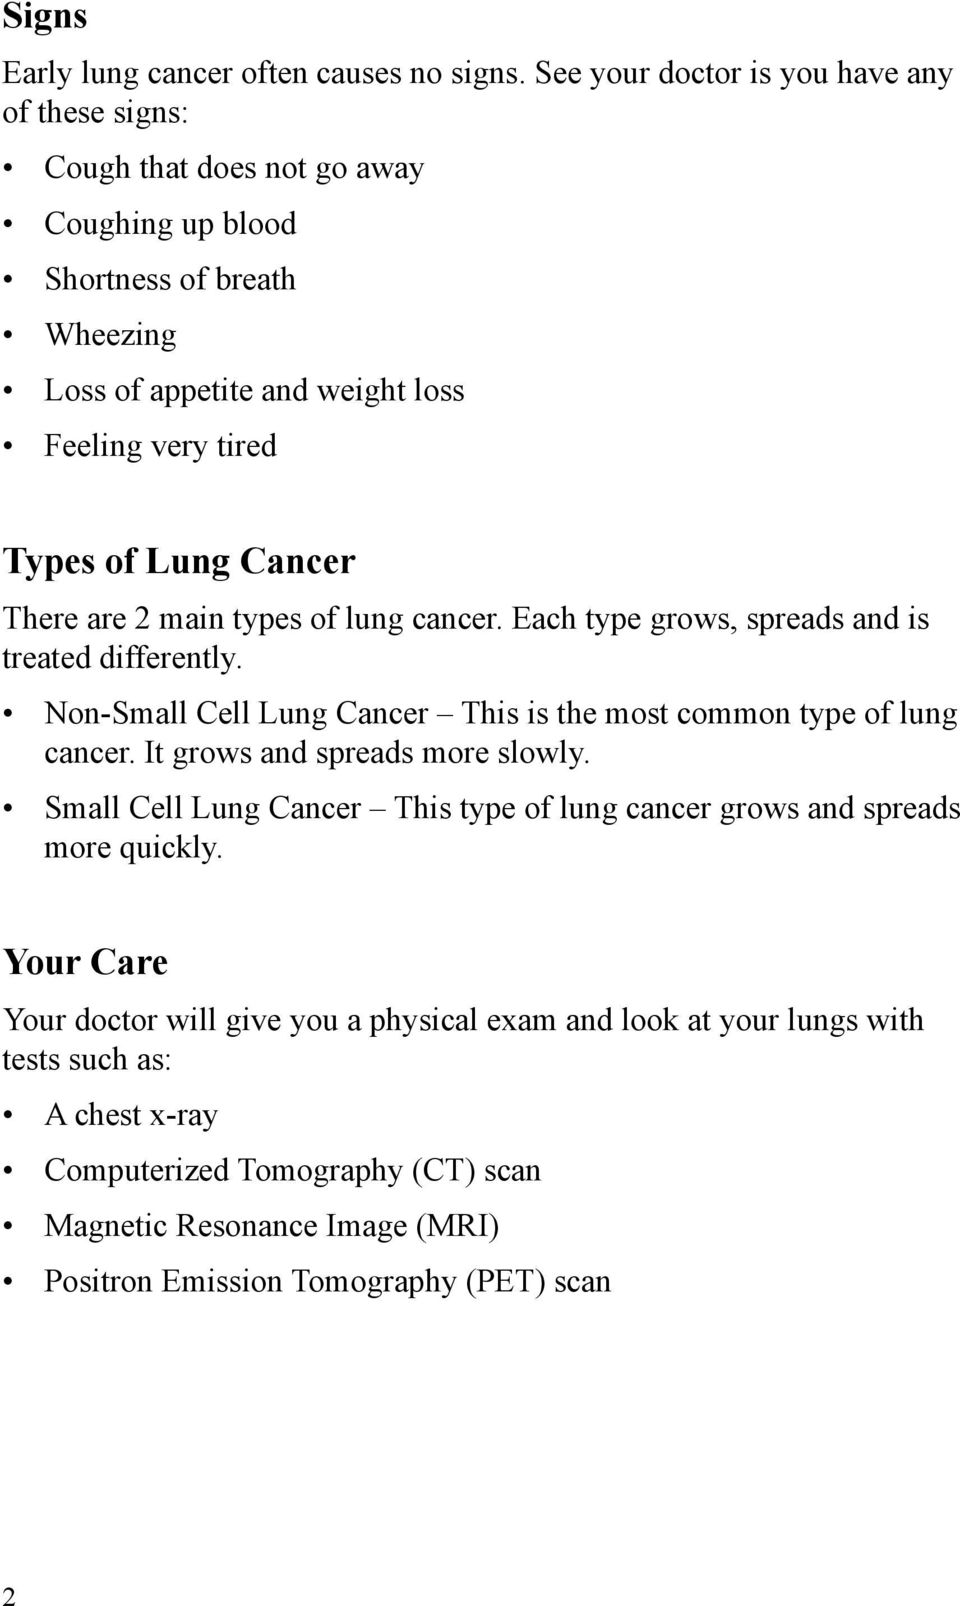 Lung Cancer There are 2 main types of lung cancer. Each type grows, spreads and is treated differently. Non-Small Cell Lung Cancer This is the most common type of lung cancer.